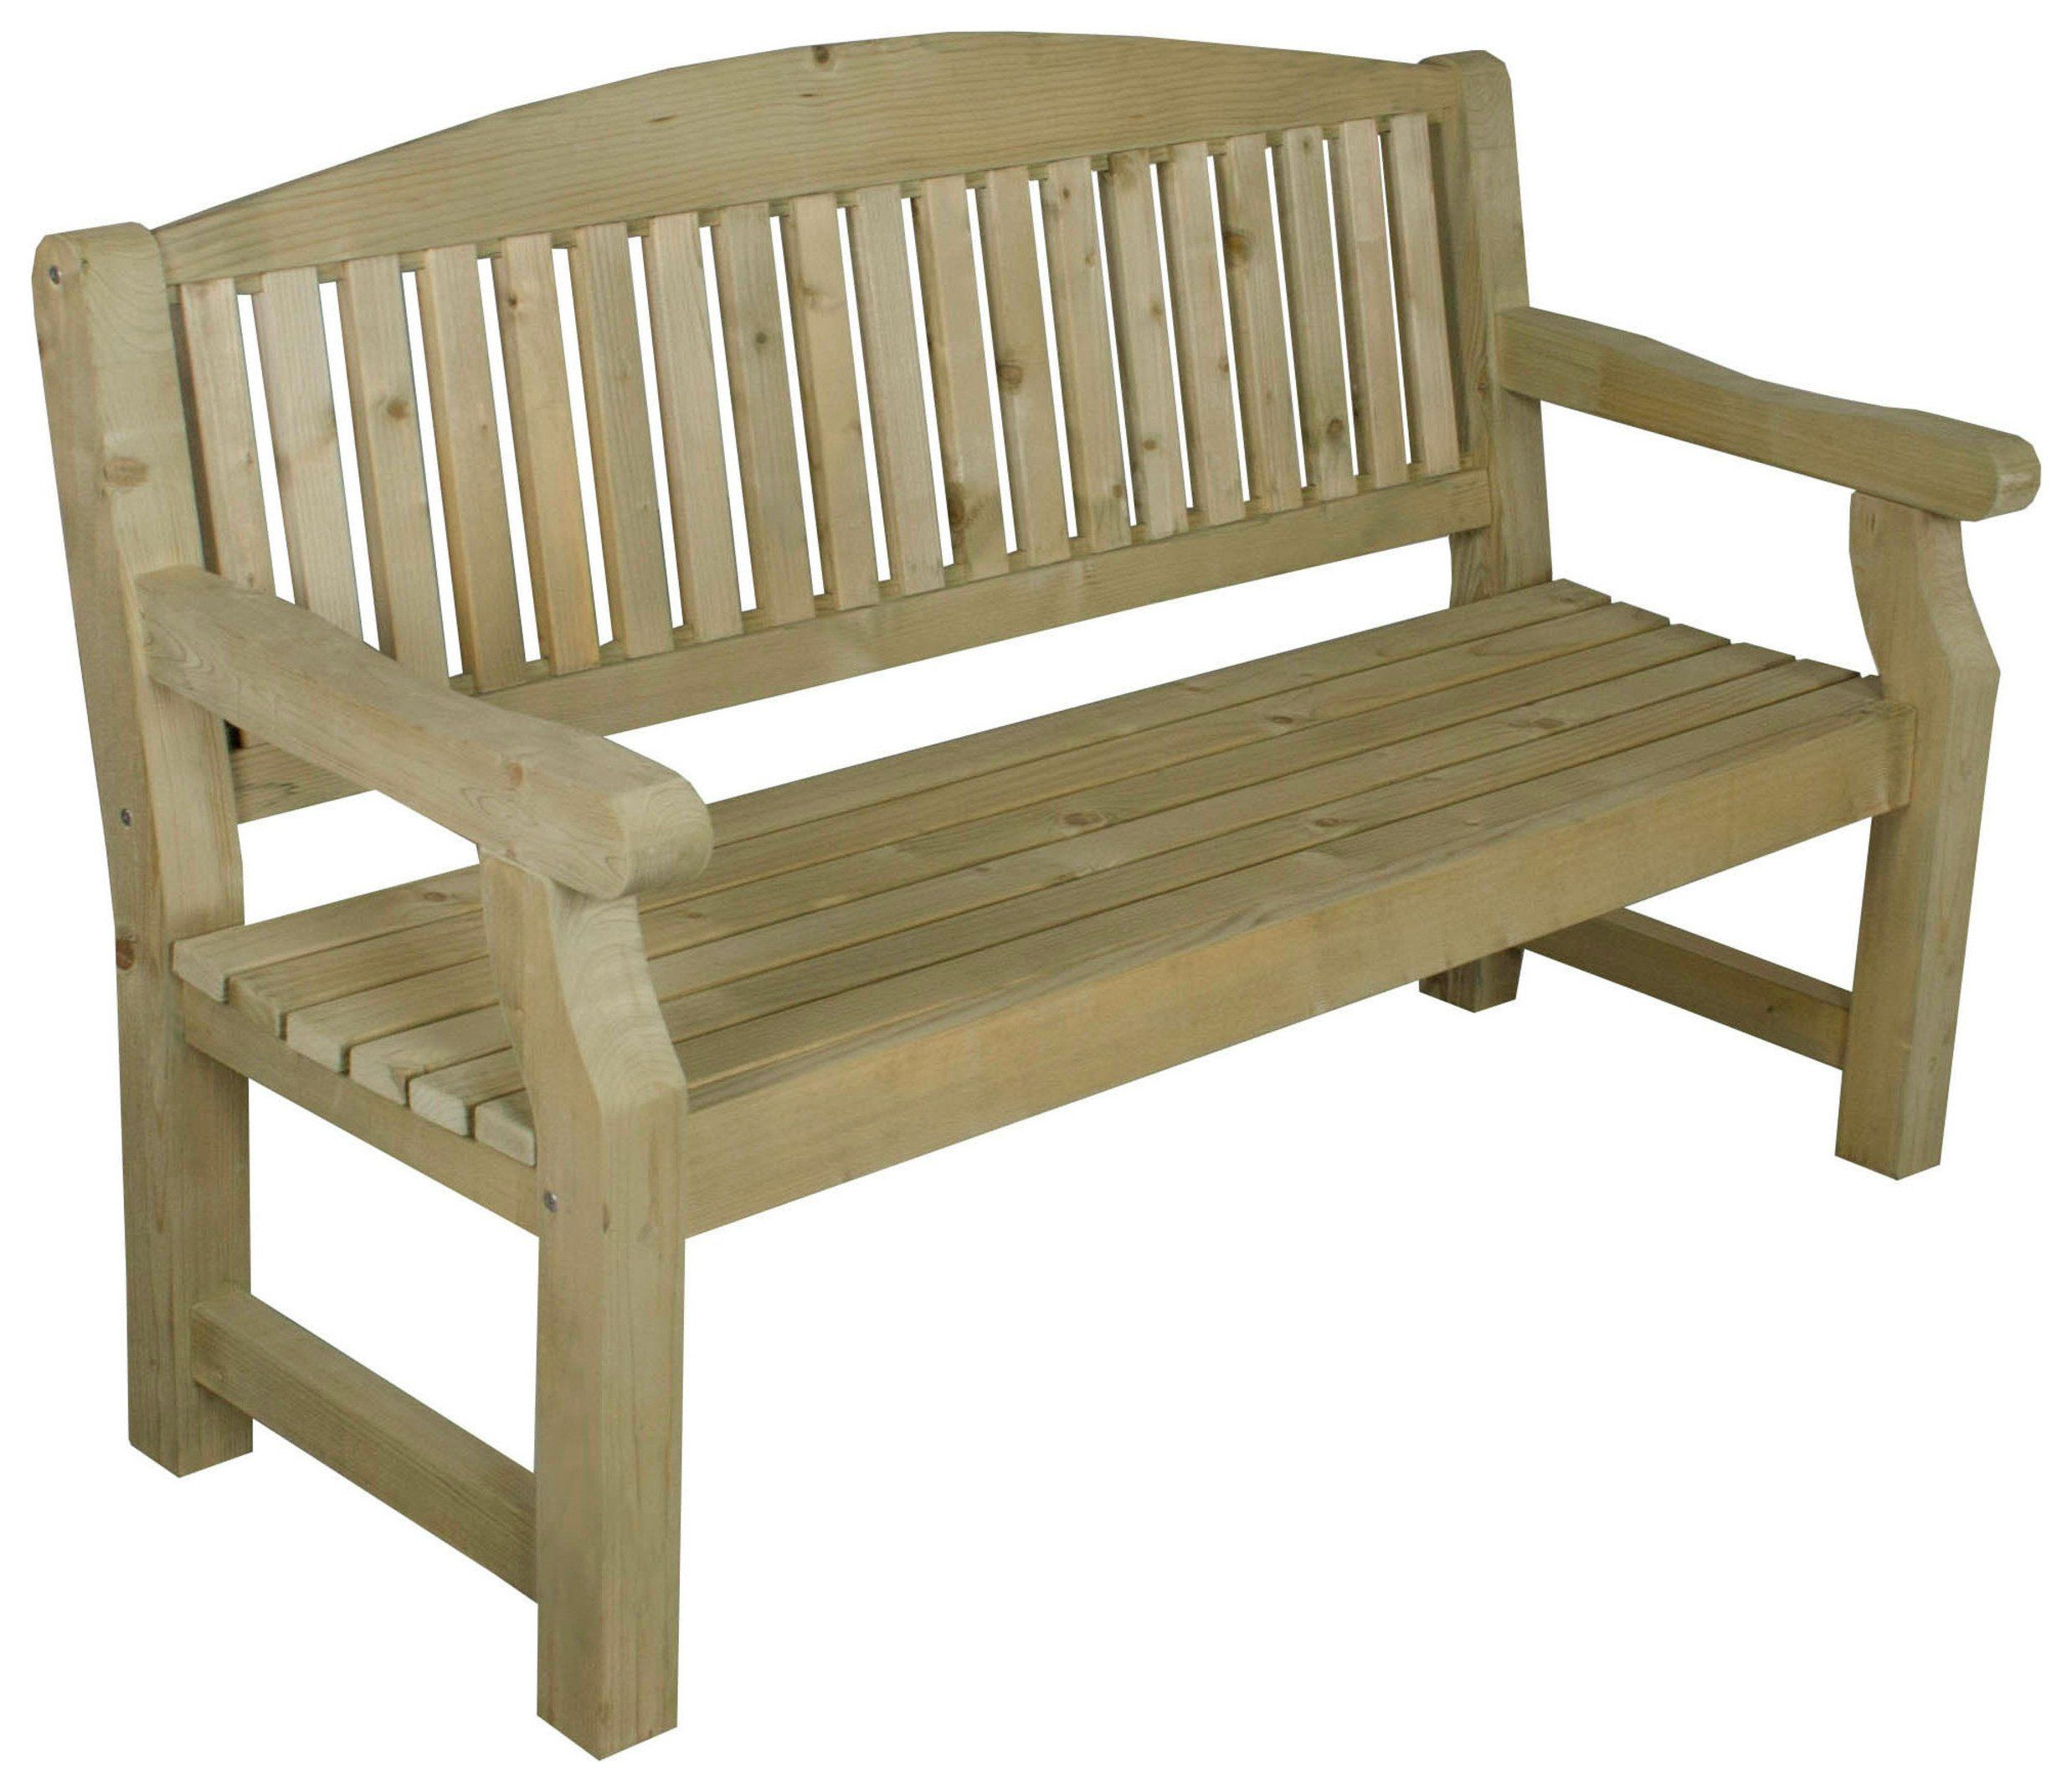 Forest Harvington Wooden 3 Seater Garden Bench in 2020